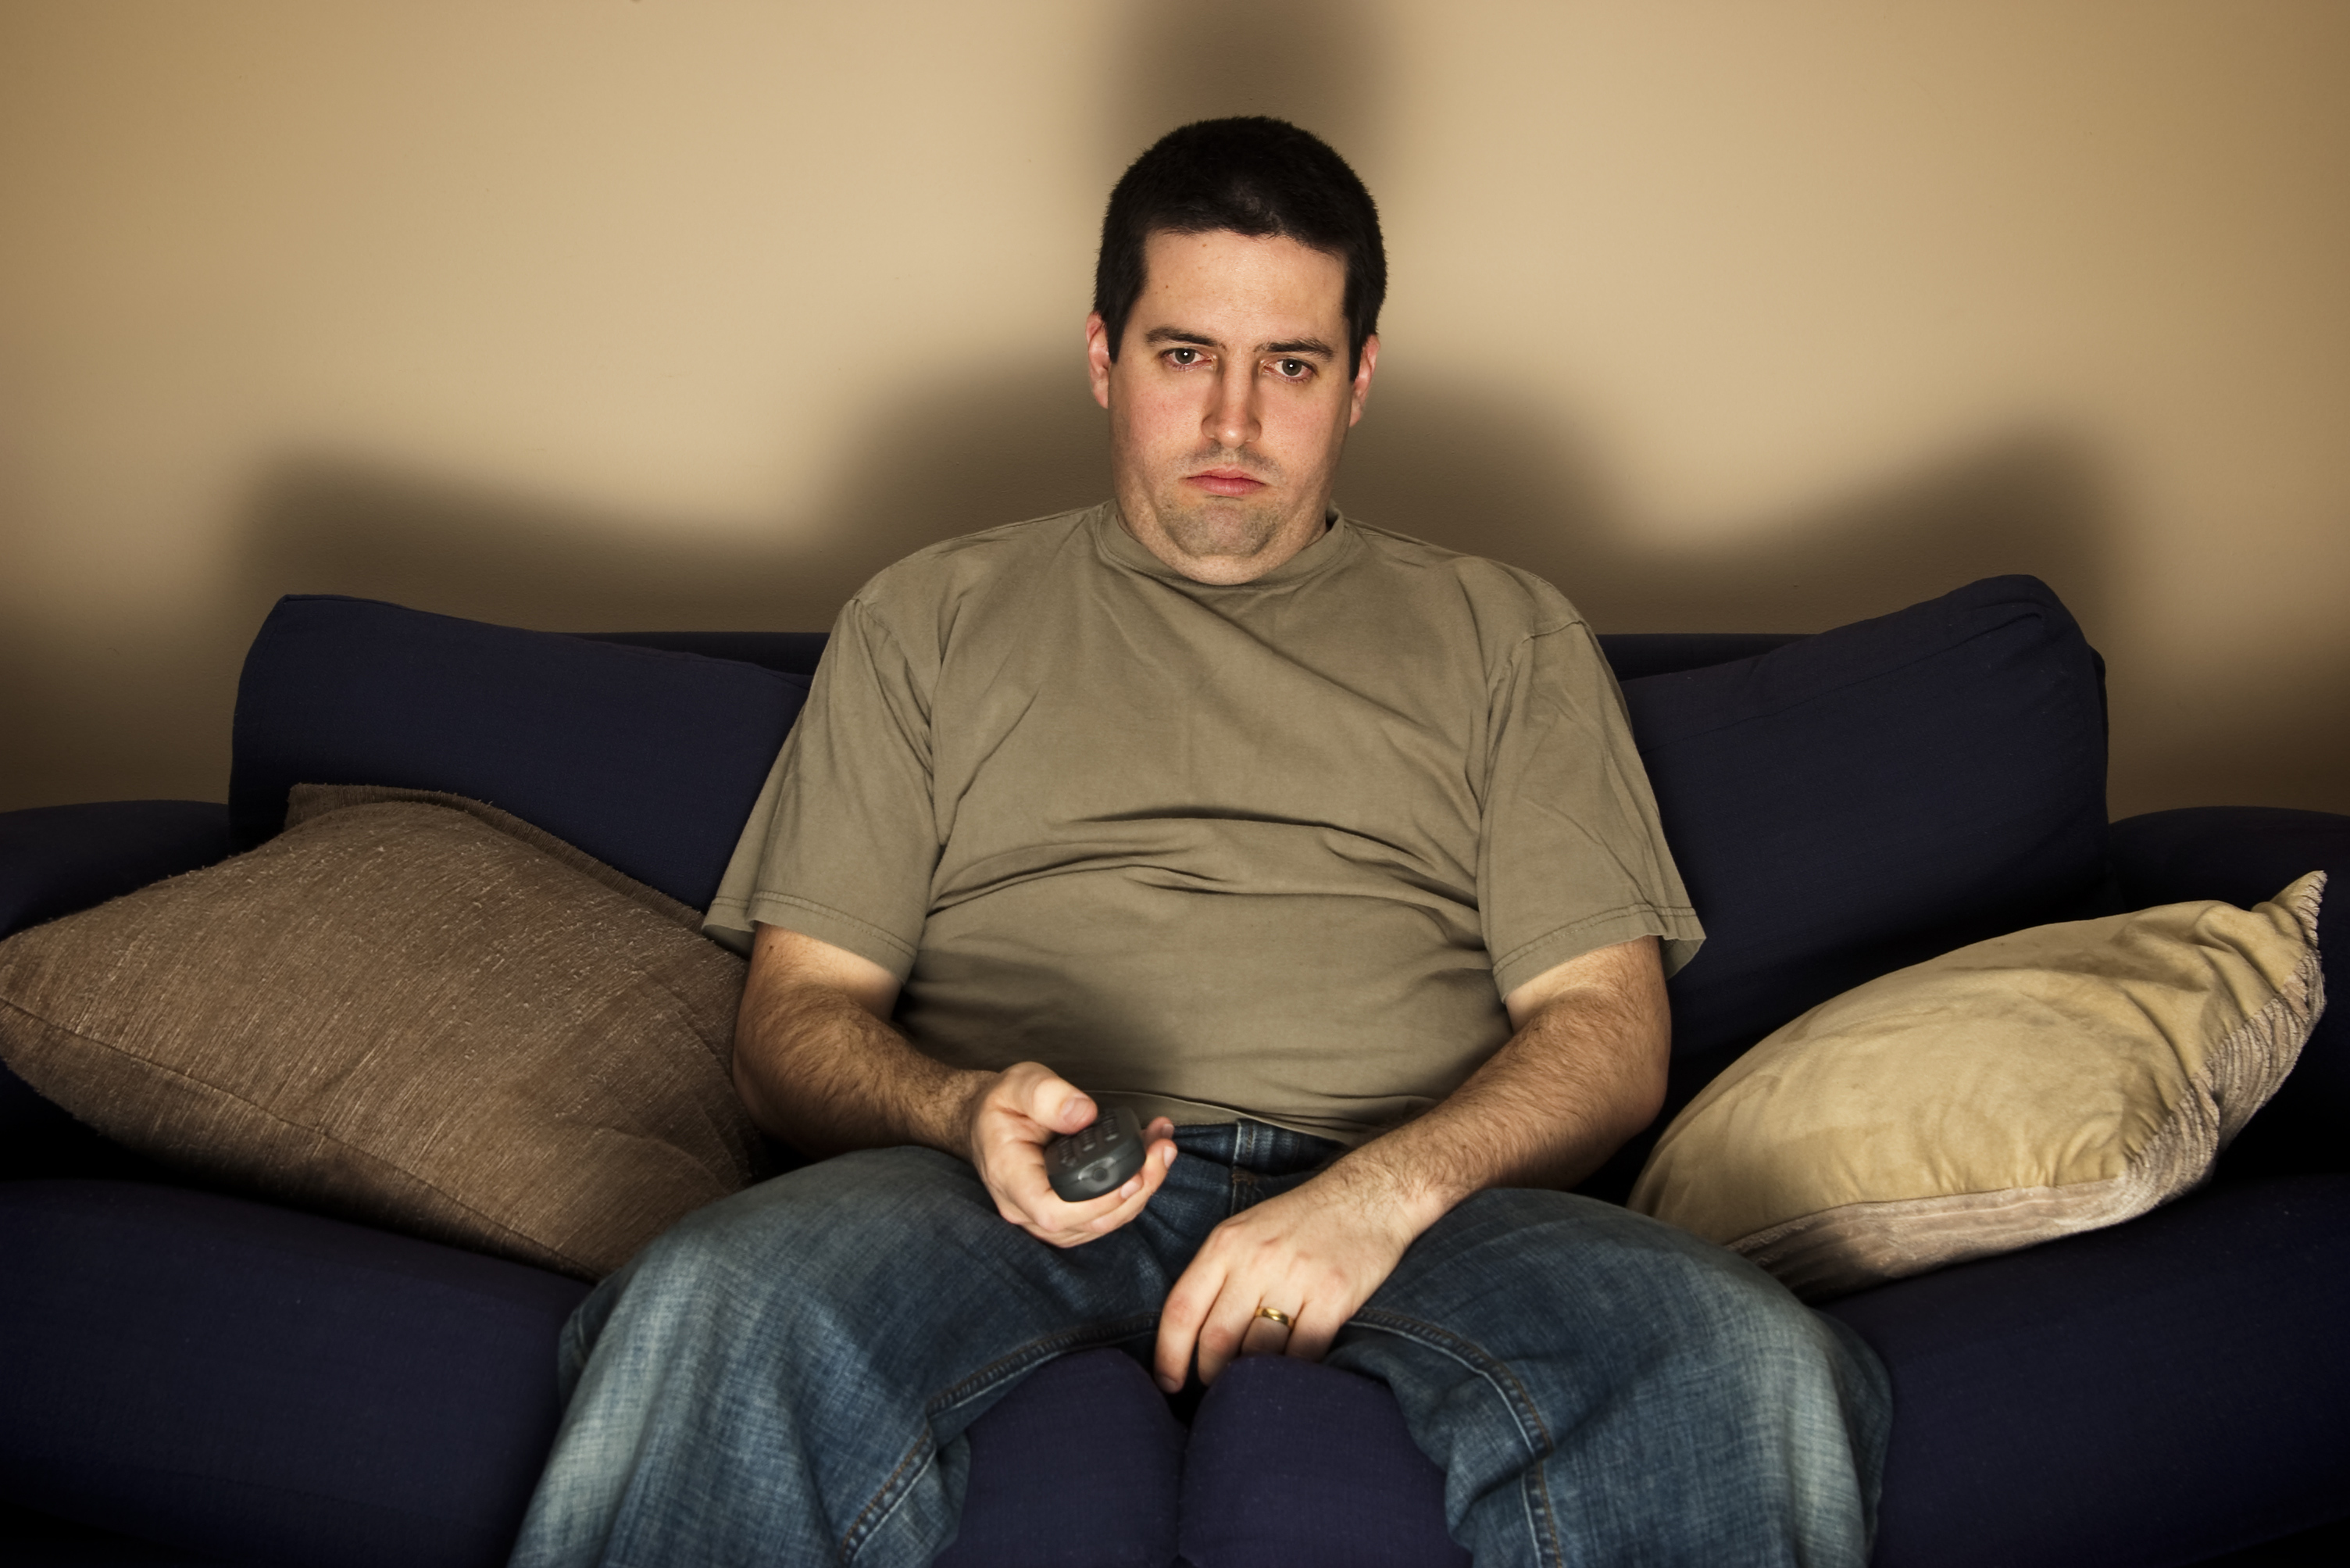 Generic photo of a man watching TV (ThinkStock/PA)